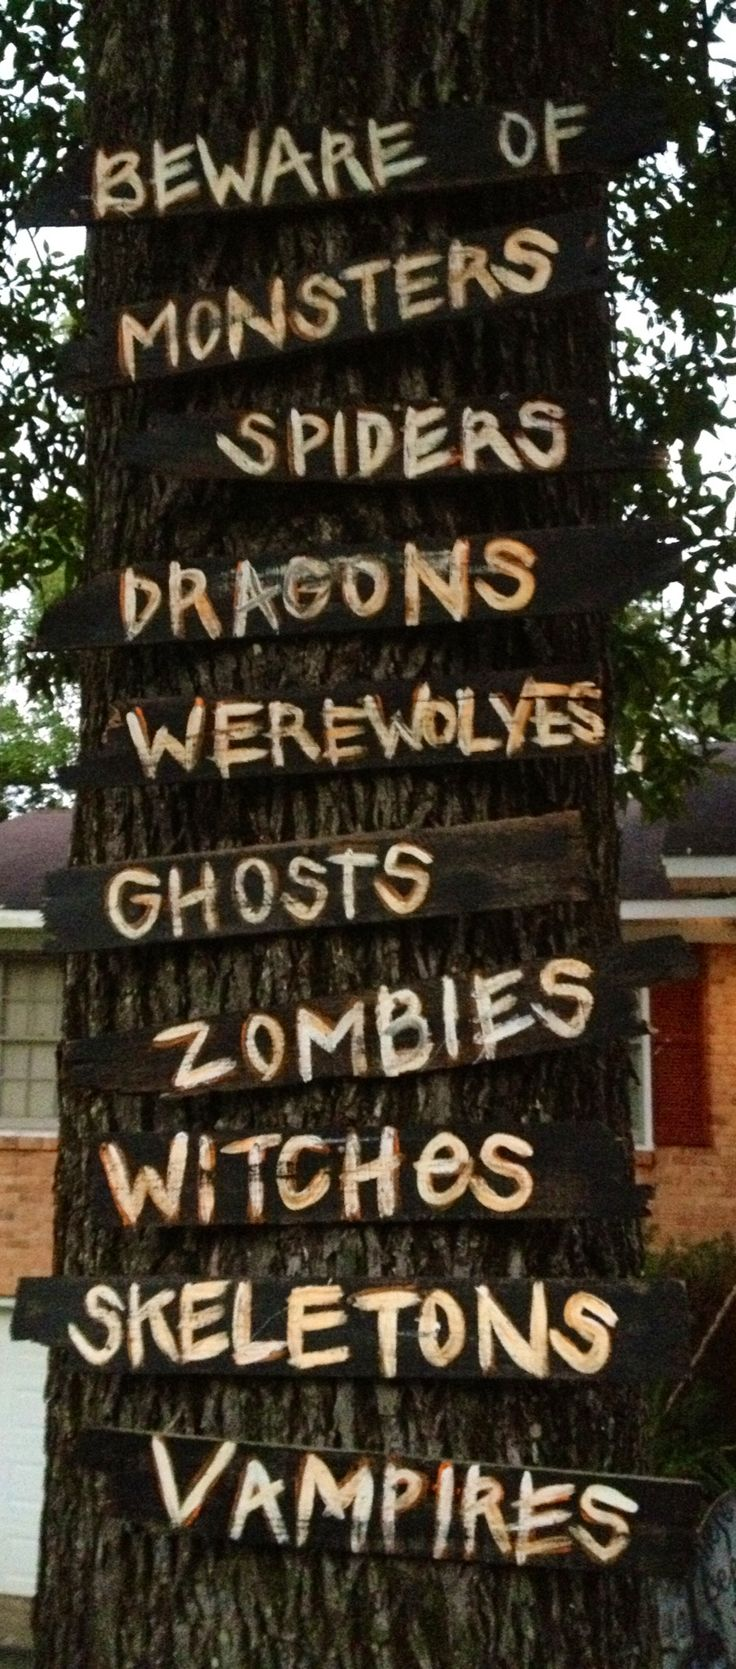 238 best don't go in the woods! images on pinterest | graveyards